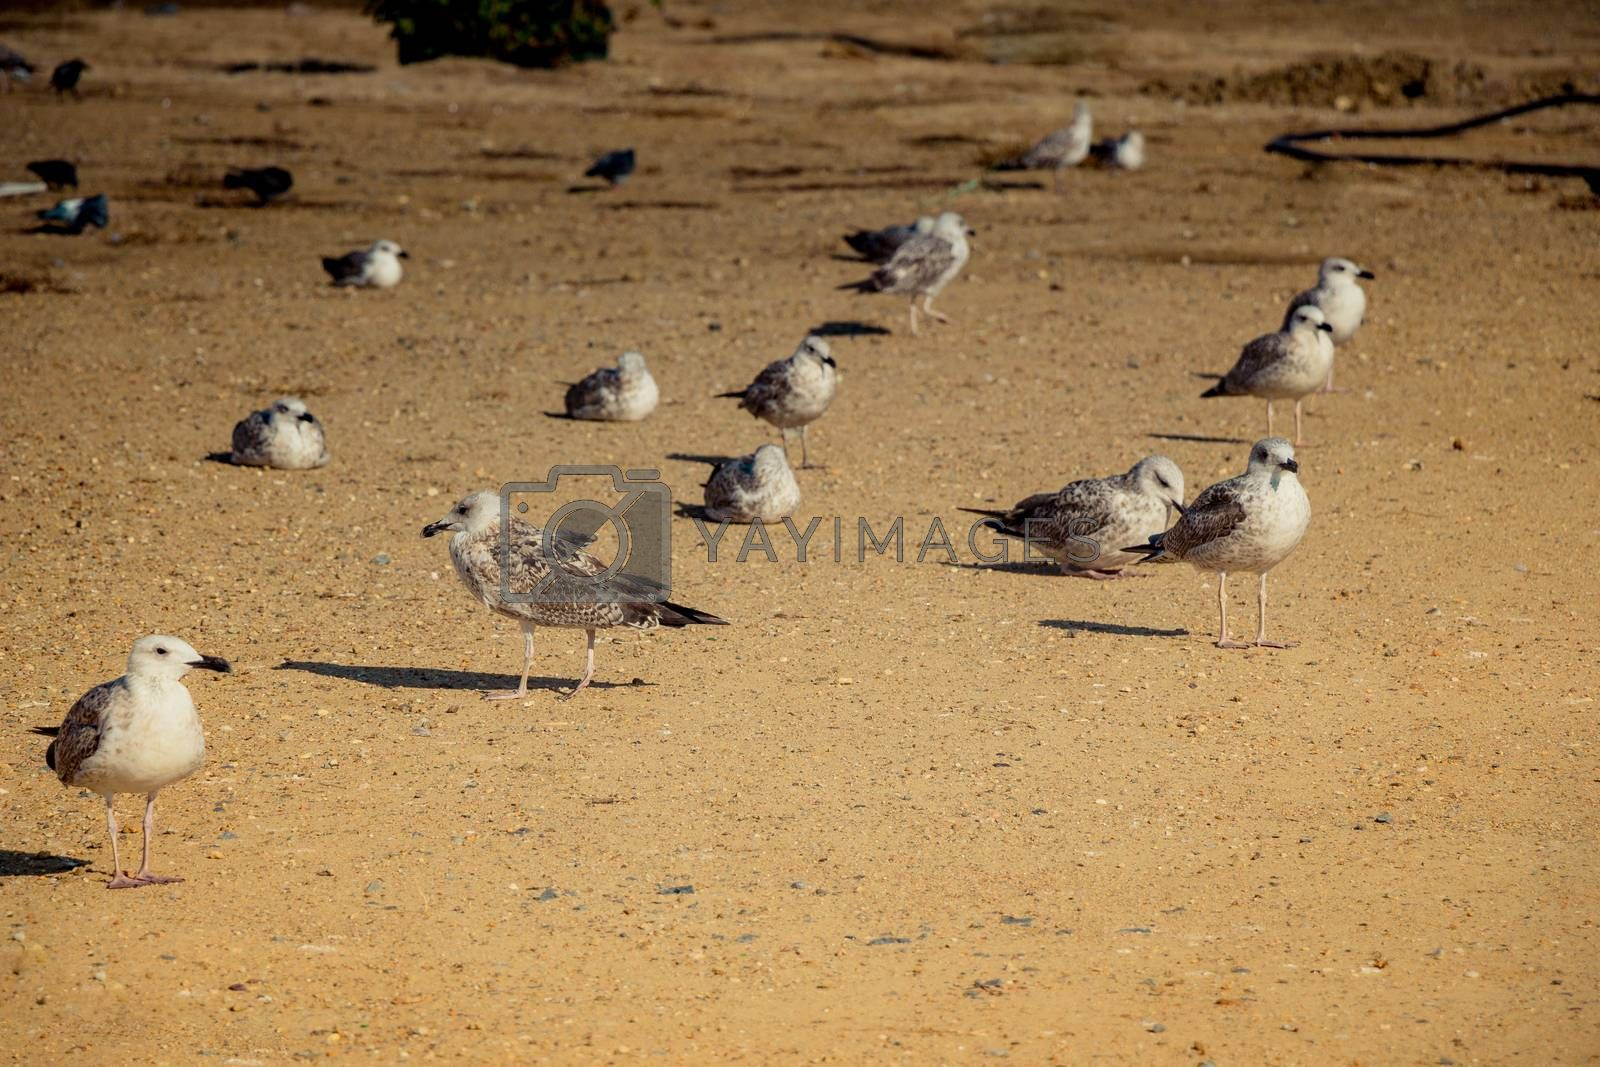 Seagulls on ground  with brown soil by berkay